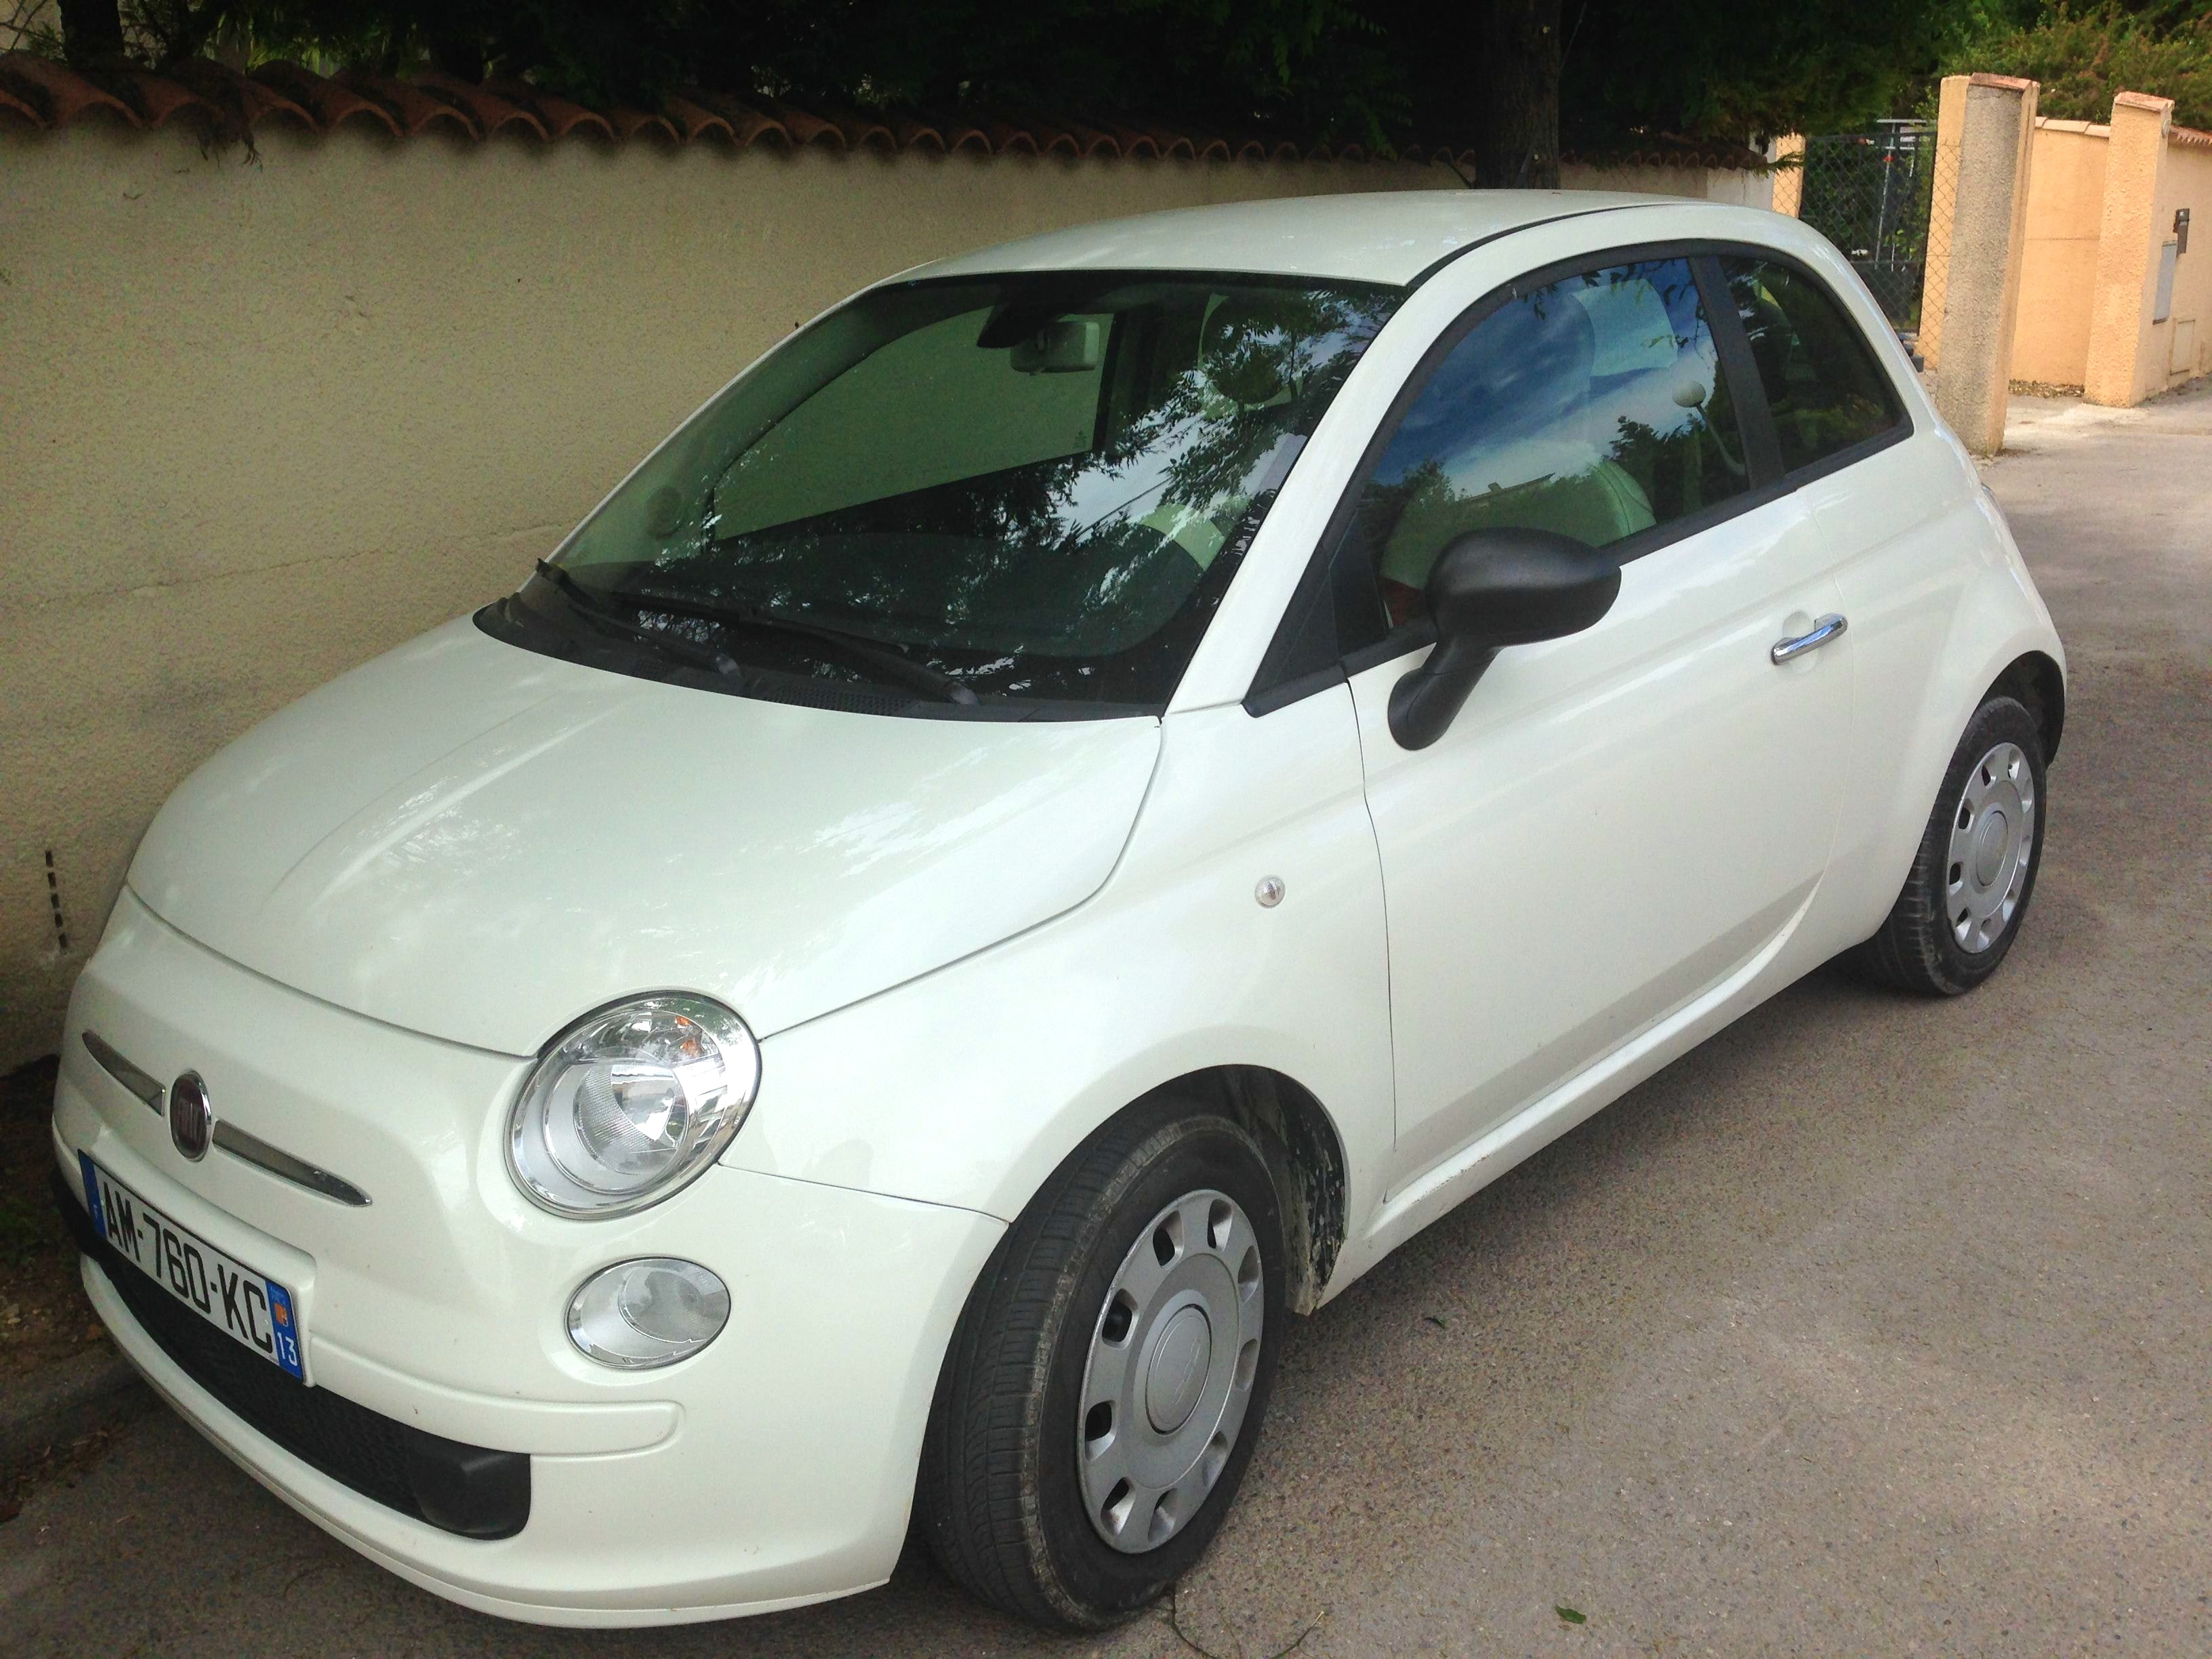 fiat  500  1,2 POP, 2010, Essence - Citadine Montpellier (34)